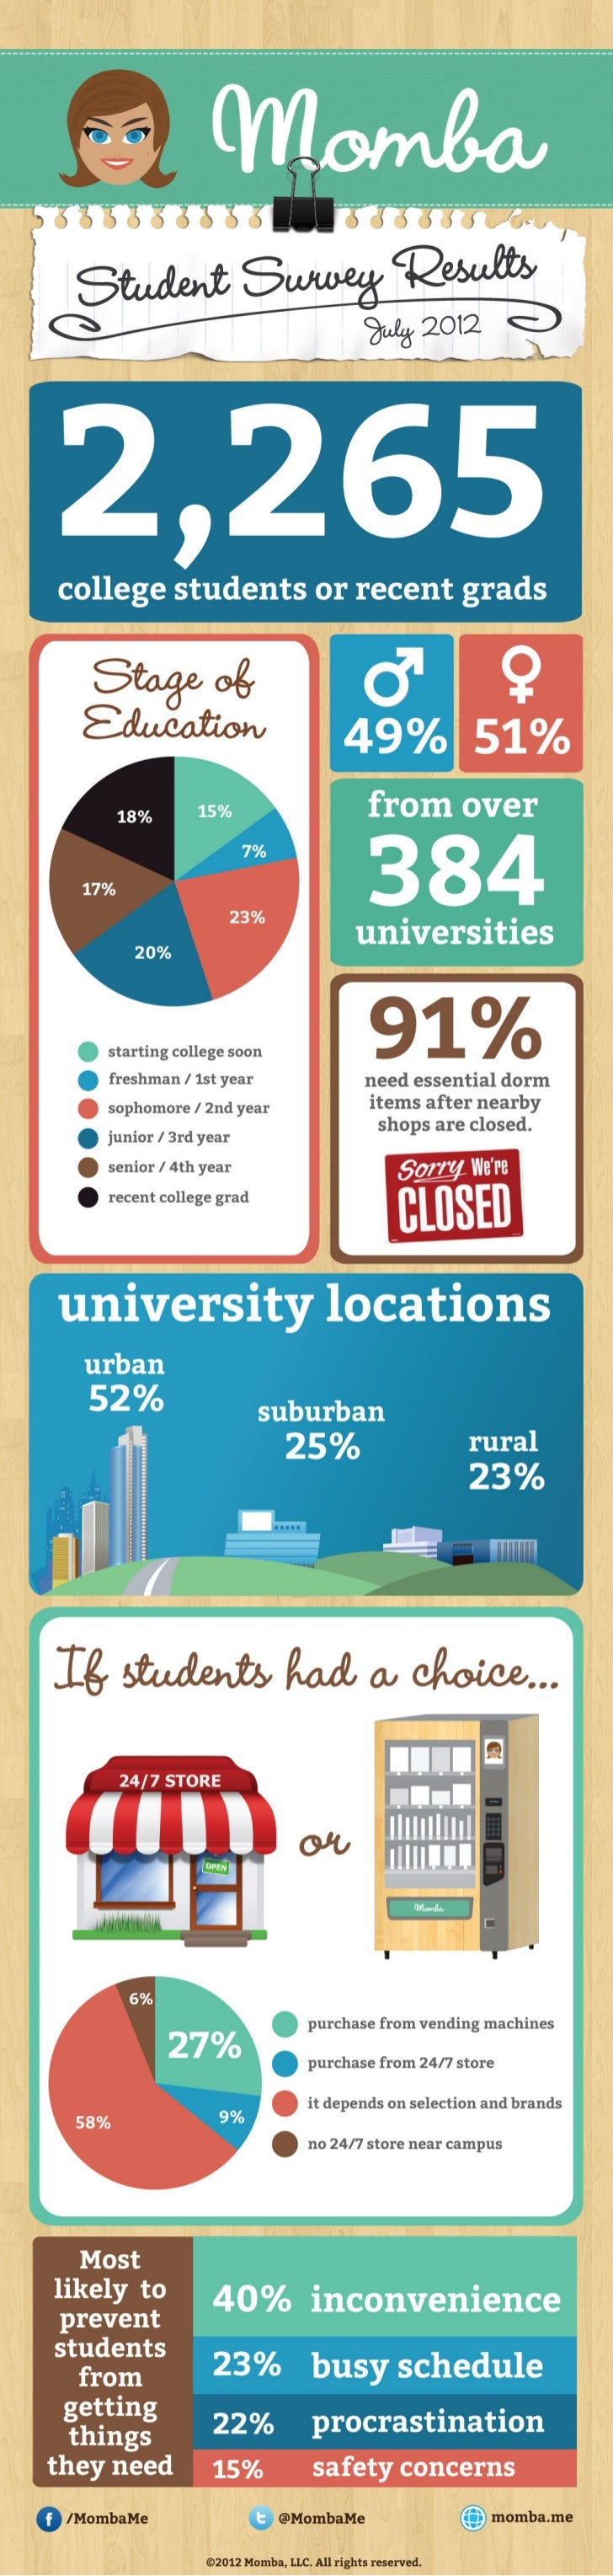 [ College Infographic ] Momba Student Survey Results   July 2012   http://momba.me   @MombaMe